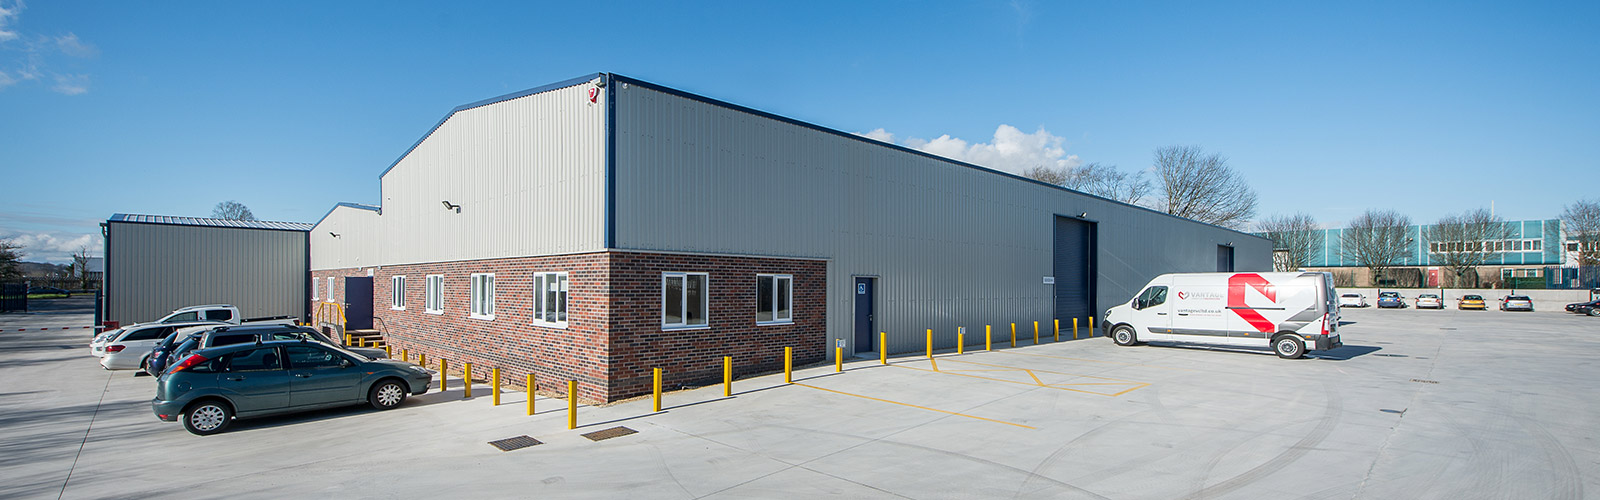 Our Premises. Vantage is now based at state-of-the art facilities in Telford, Shropshire with capacity to convert and store large fleets of vehicles.